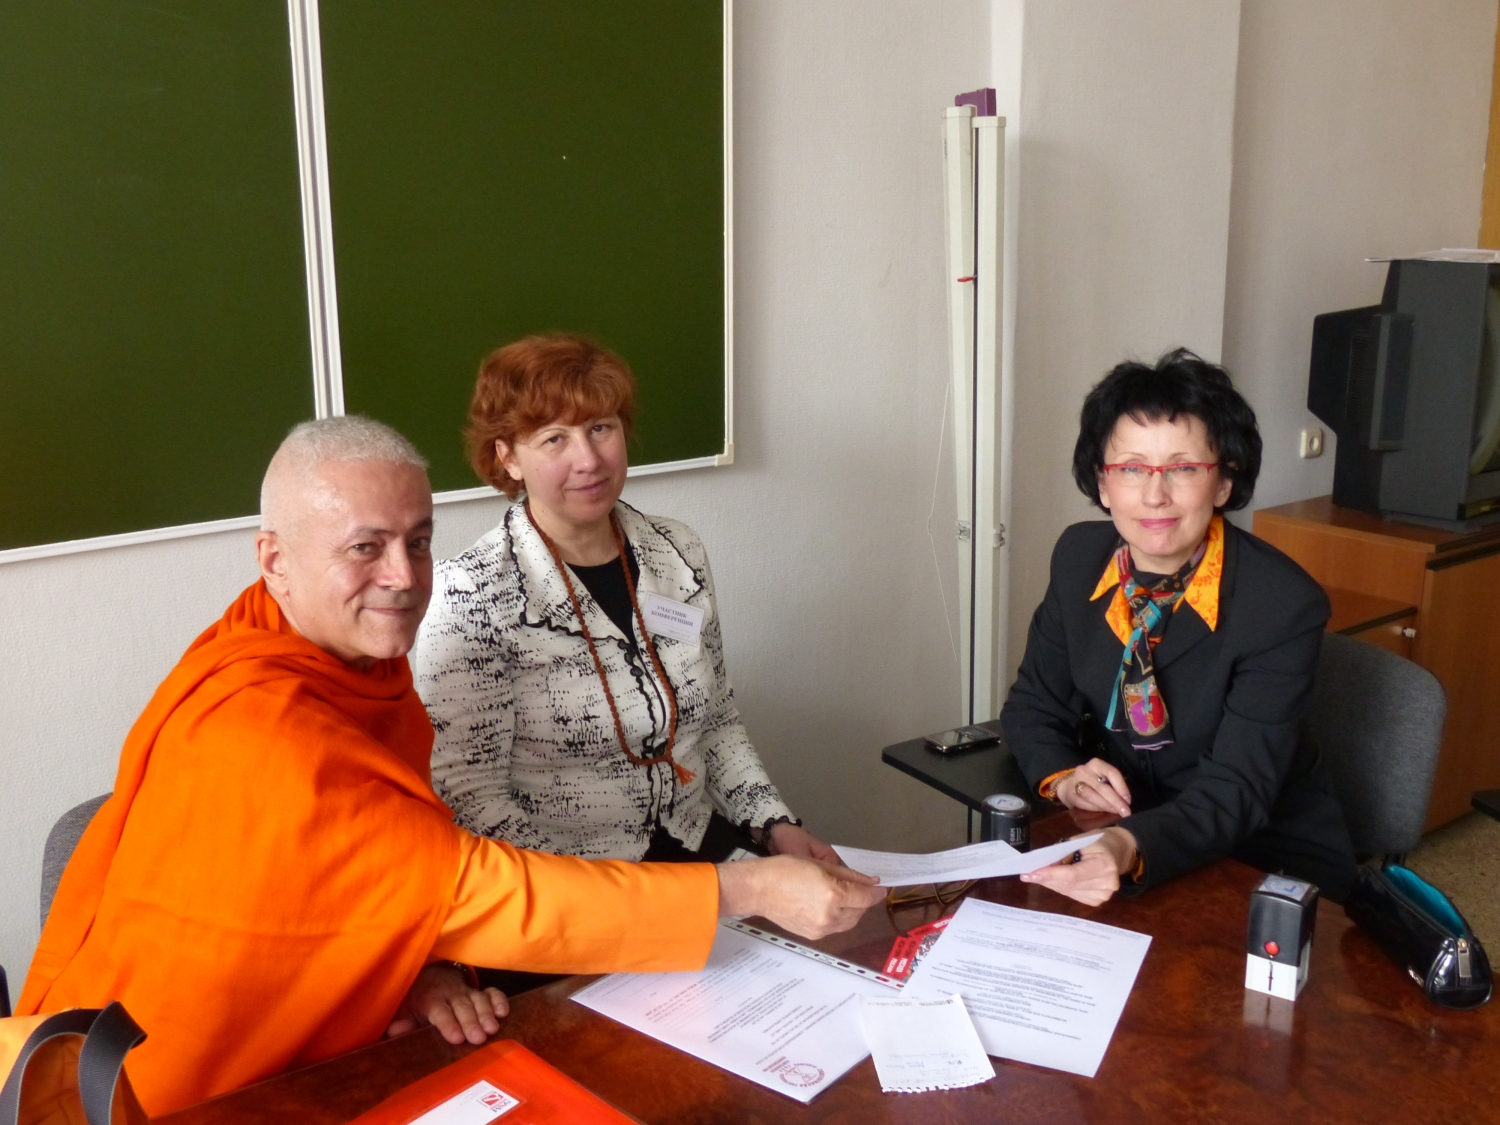 Meeting with the Board of Direction of the Classical Yoga Federation of Russia - Moscow, Russia - 2013, April (...)